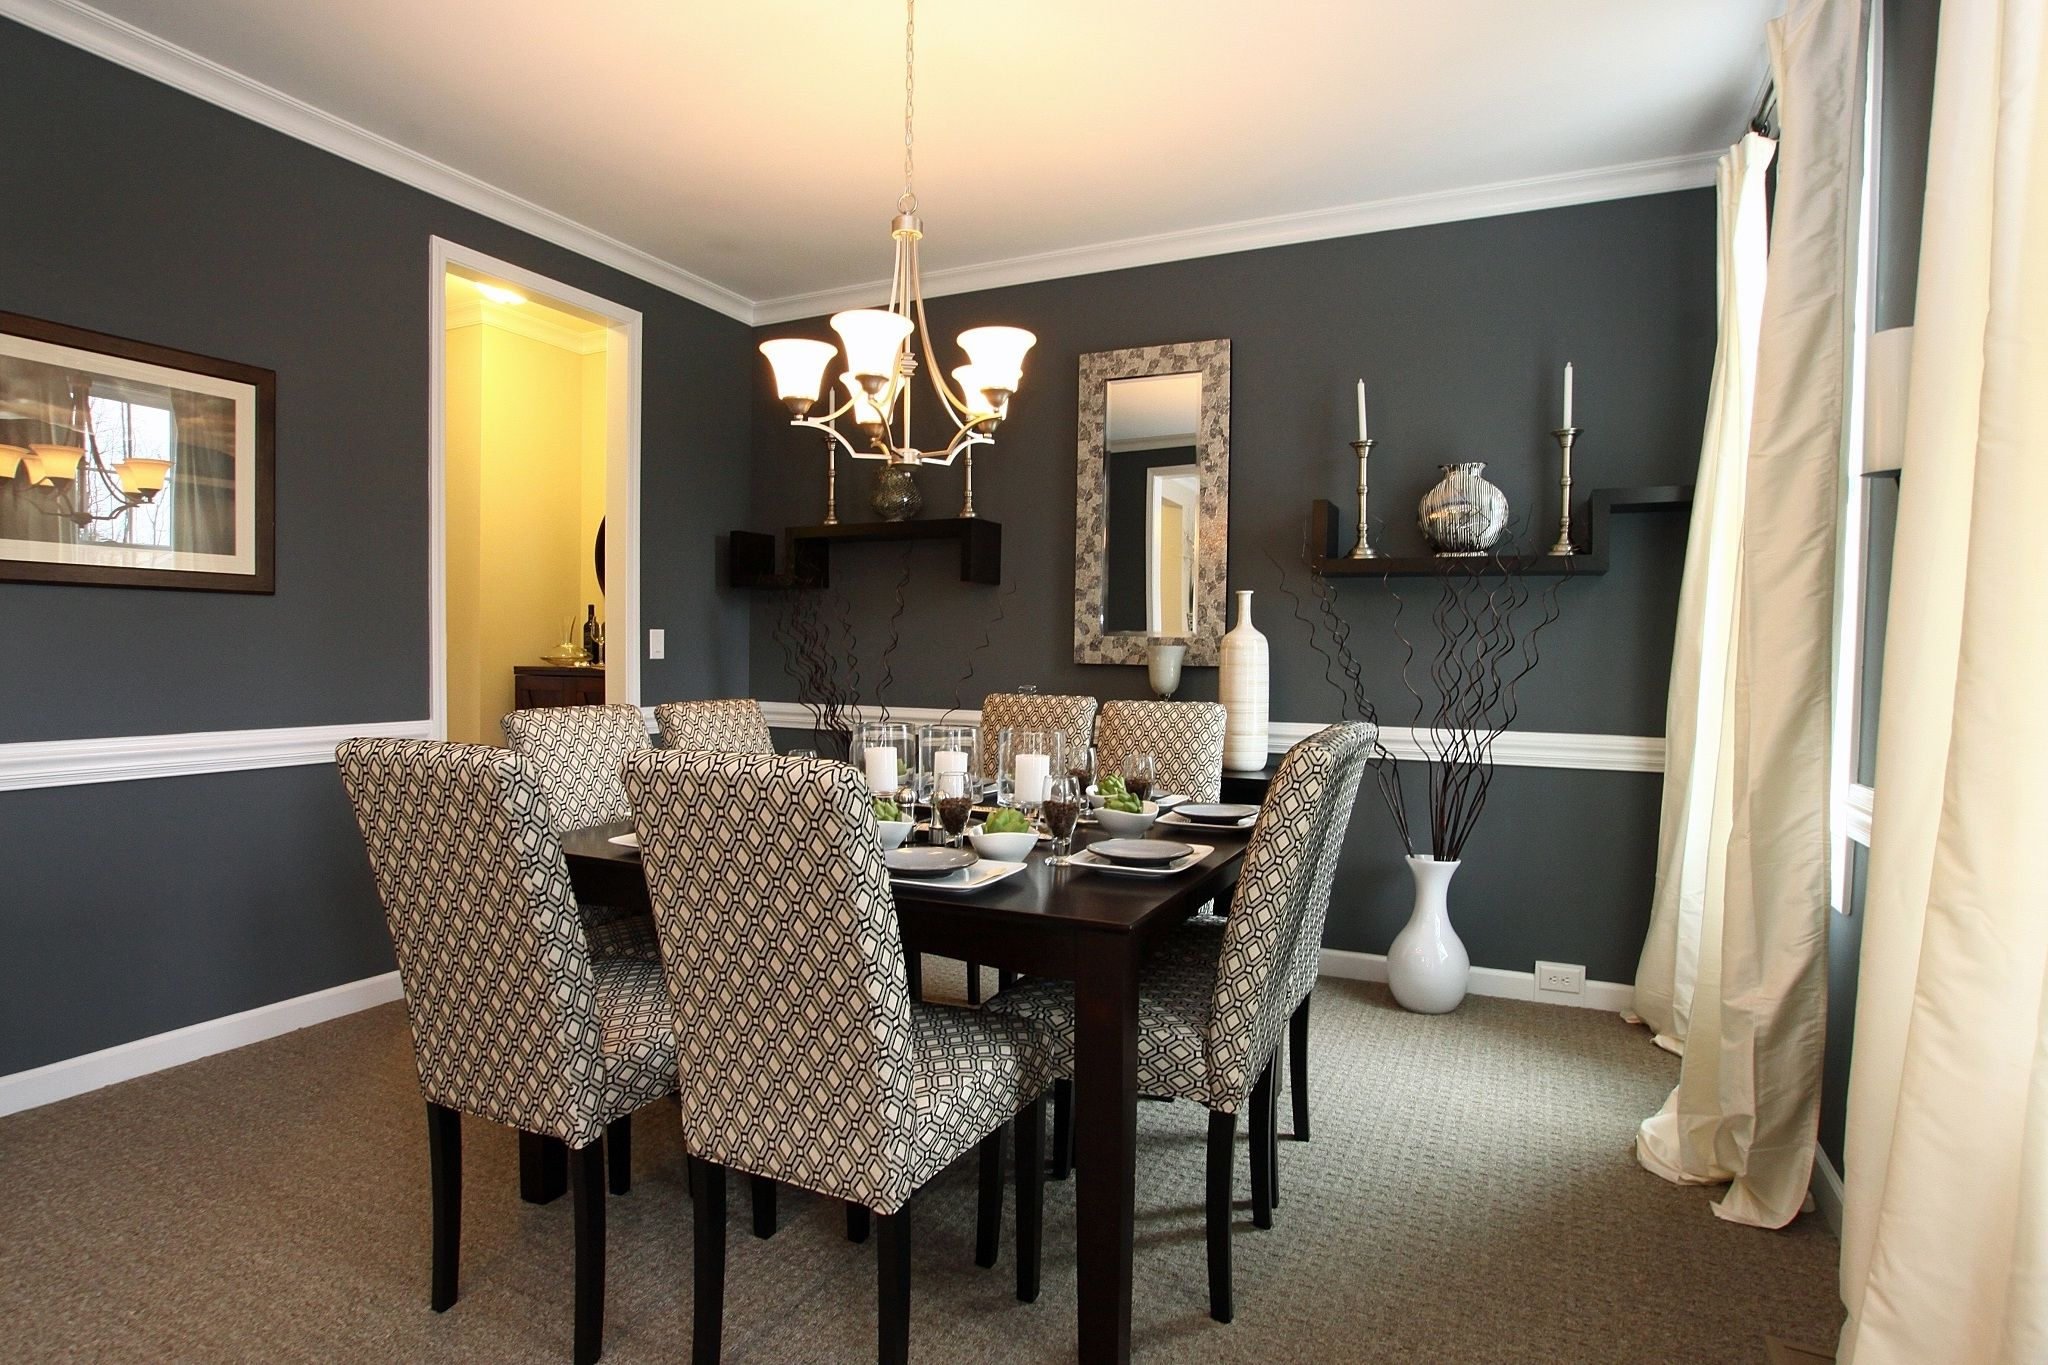 50 Ways to Re-imagine Your Dream Dining Spot | Dining room ...